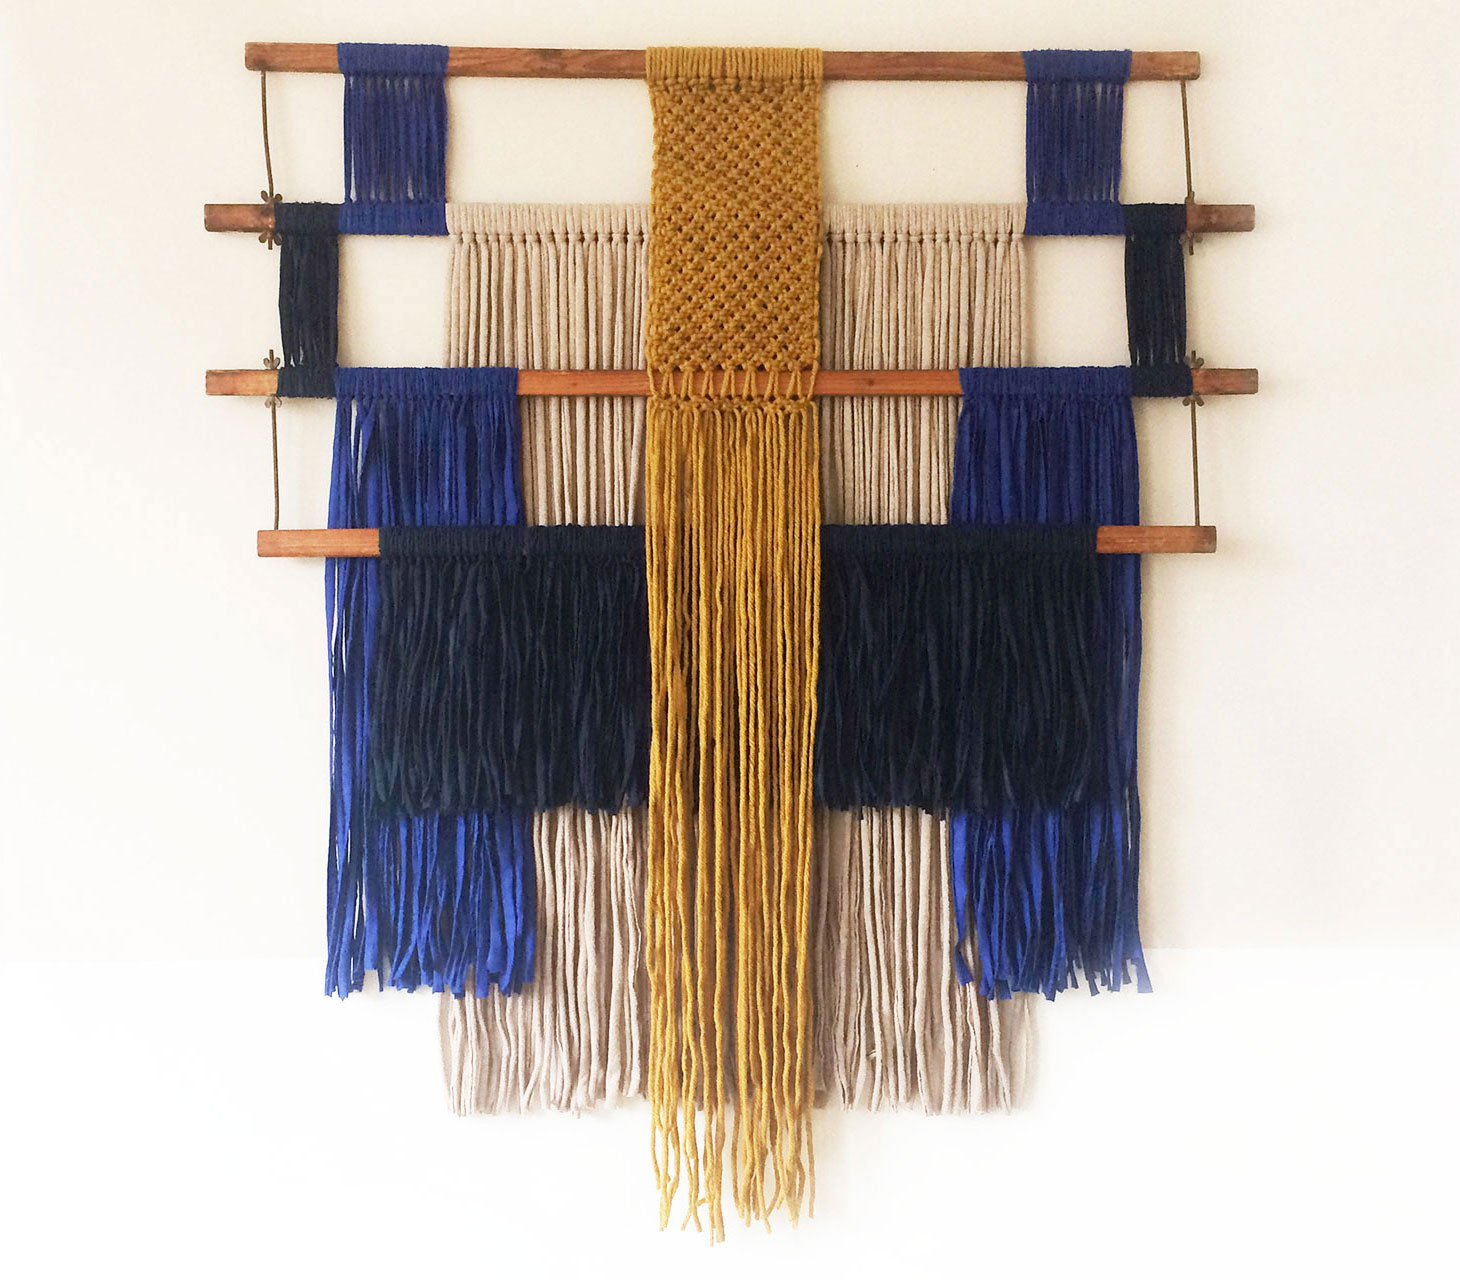 wallhanging_macrame_weaving_loom_fabric